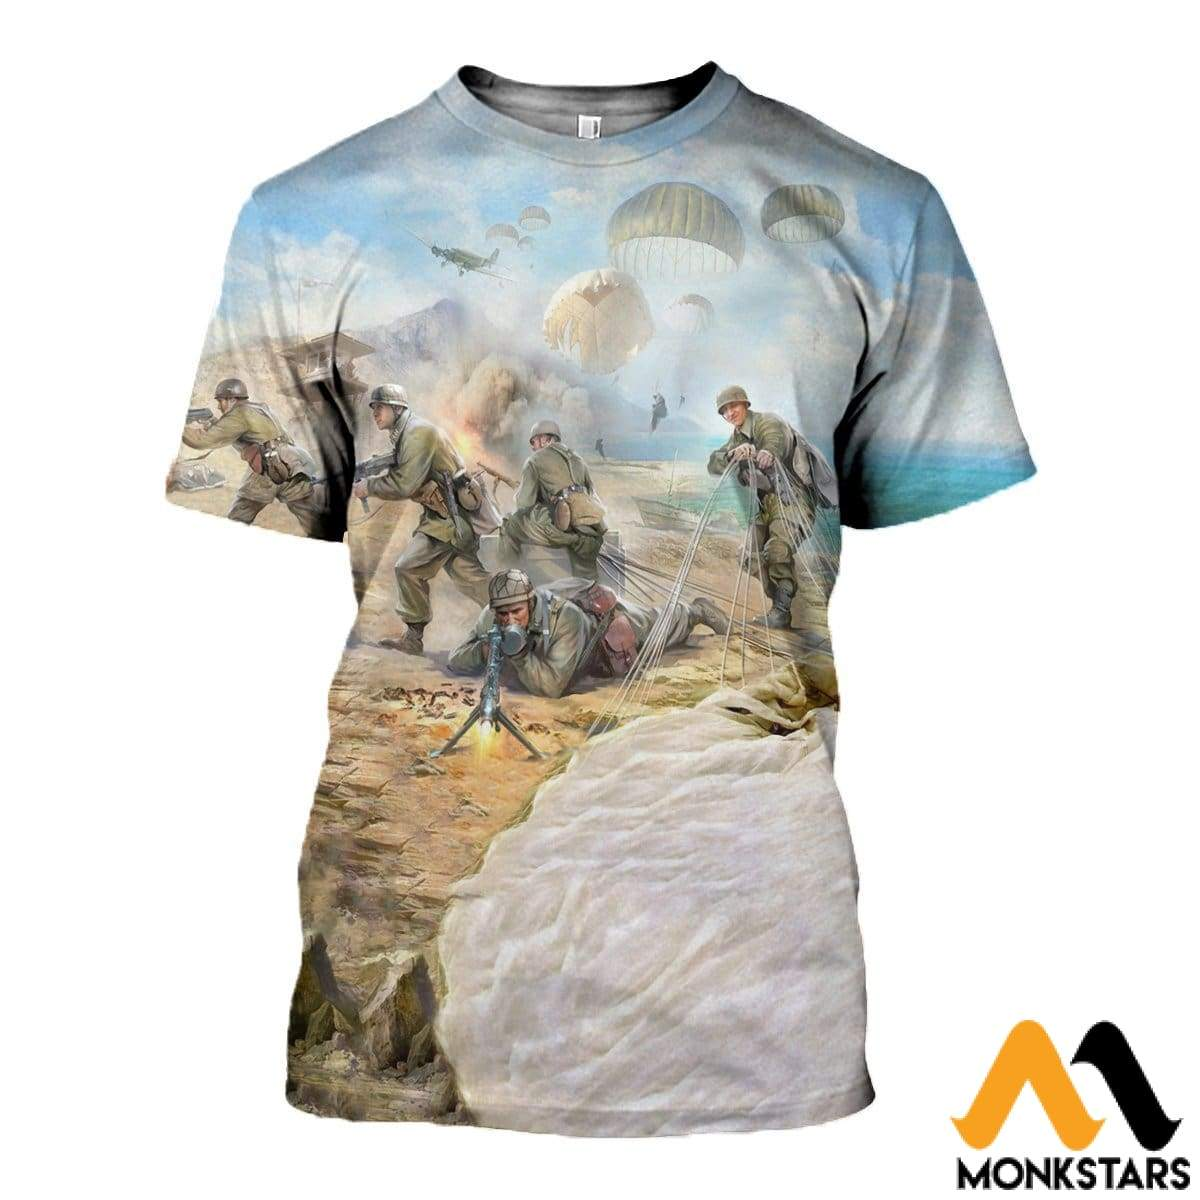 3D All Over Printed Paratrooper Shirts And Shorts T-Shirt / Xs Clothes